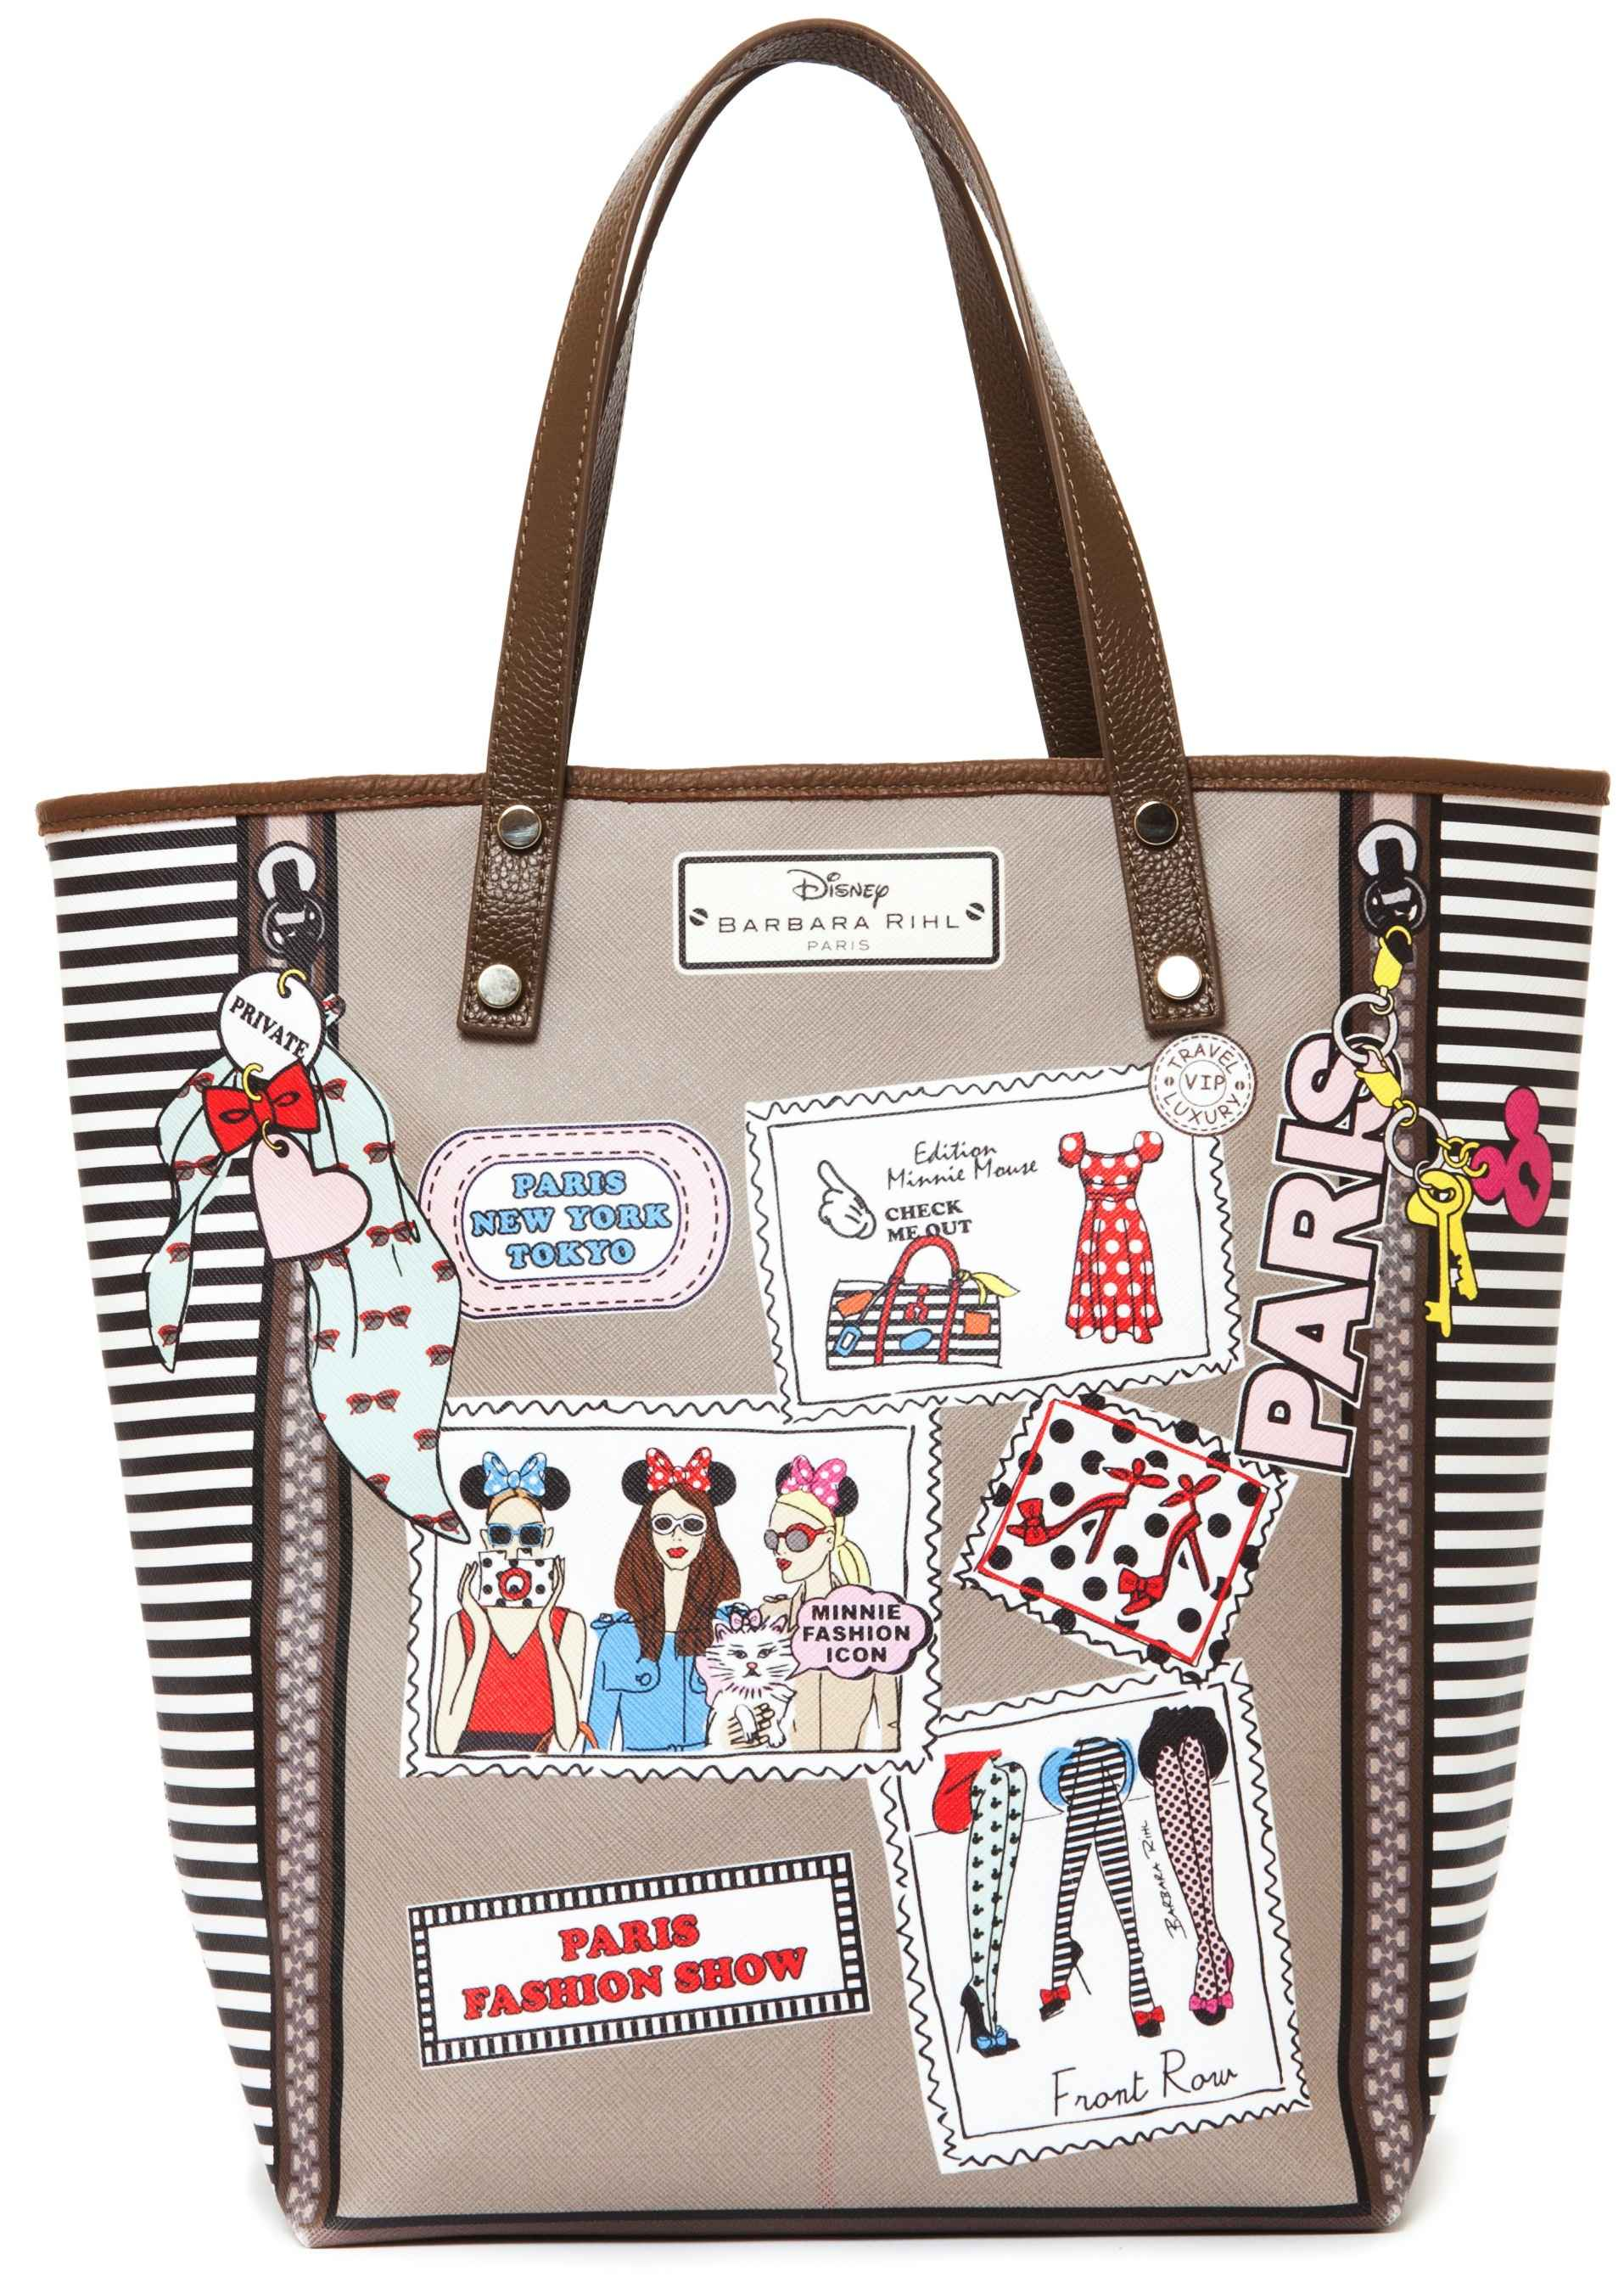 You Know Barbara Rihl For Her Famous Four Zipper Bags Miss Sarah Each Of Which Tells Travel Stories Reflecting The Designer S Joie De Vivre